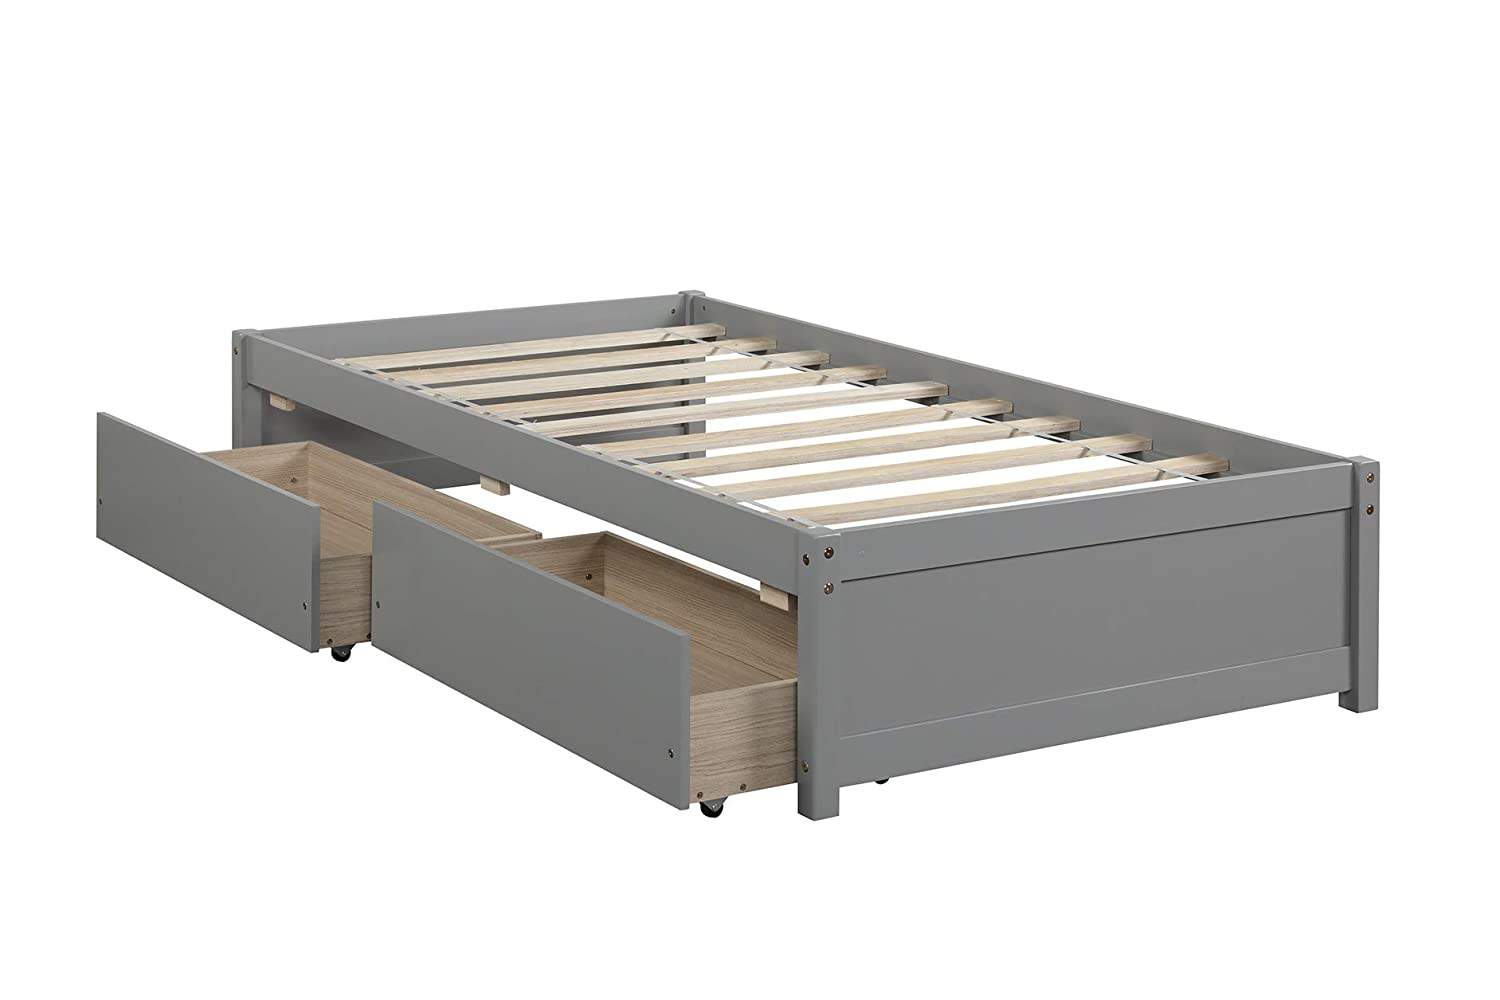 Wooden Finally popular brand Albuquerque Mall Frame Bed Bedroom Twin-B Furniture Grey